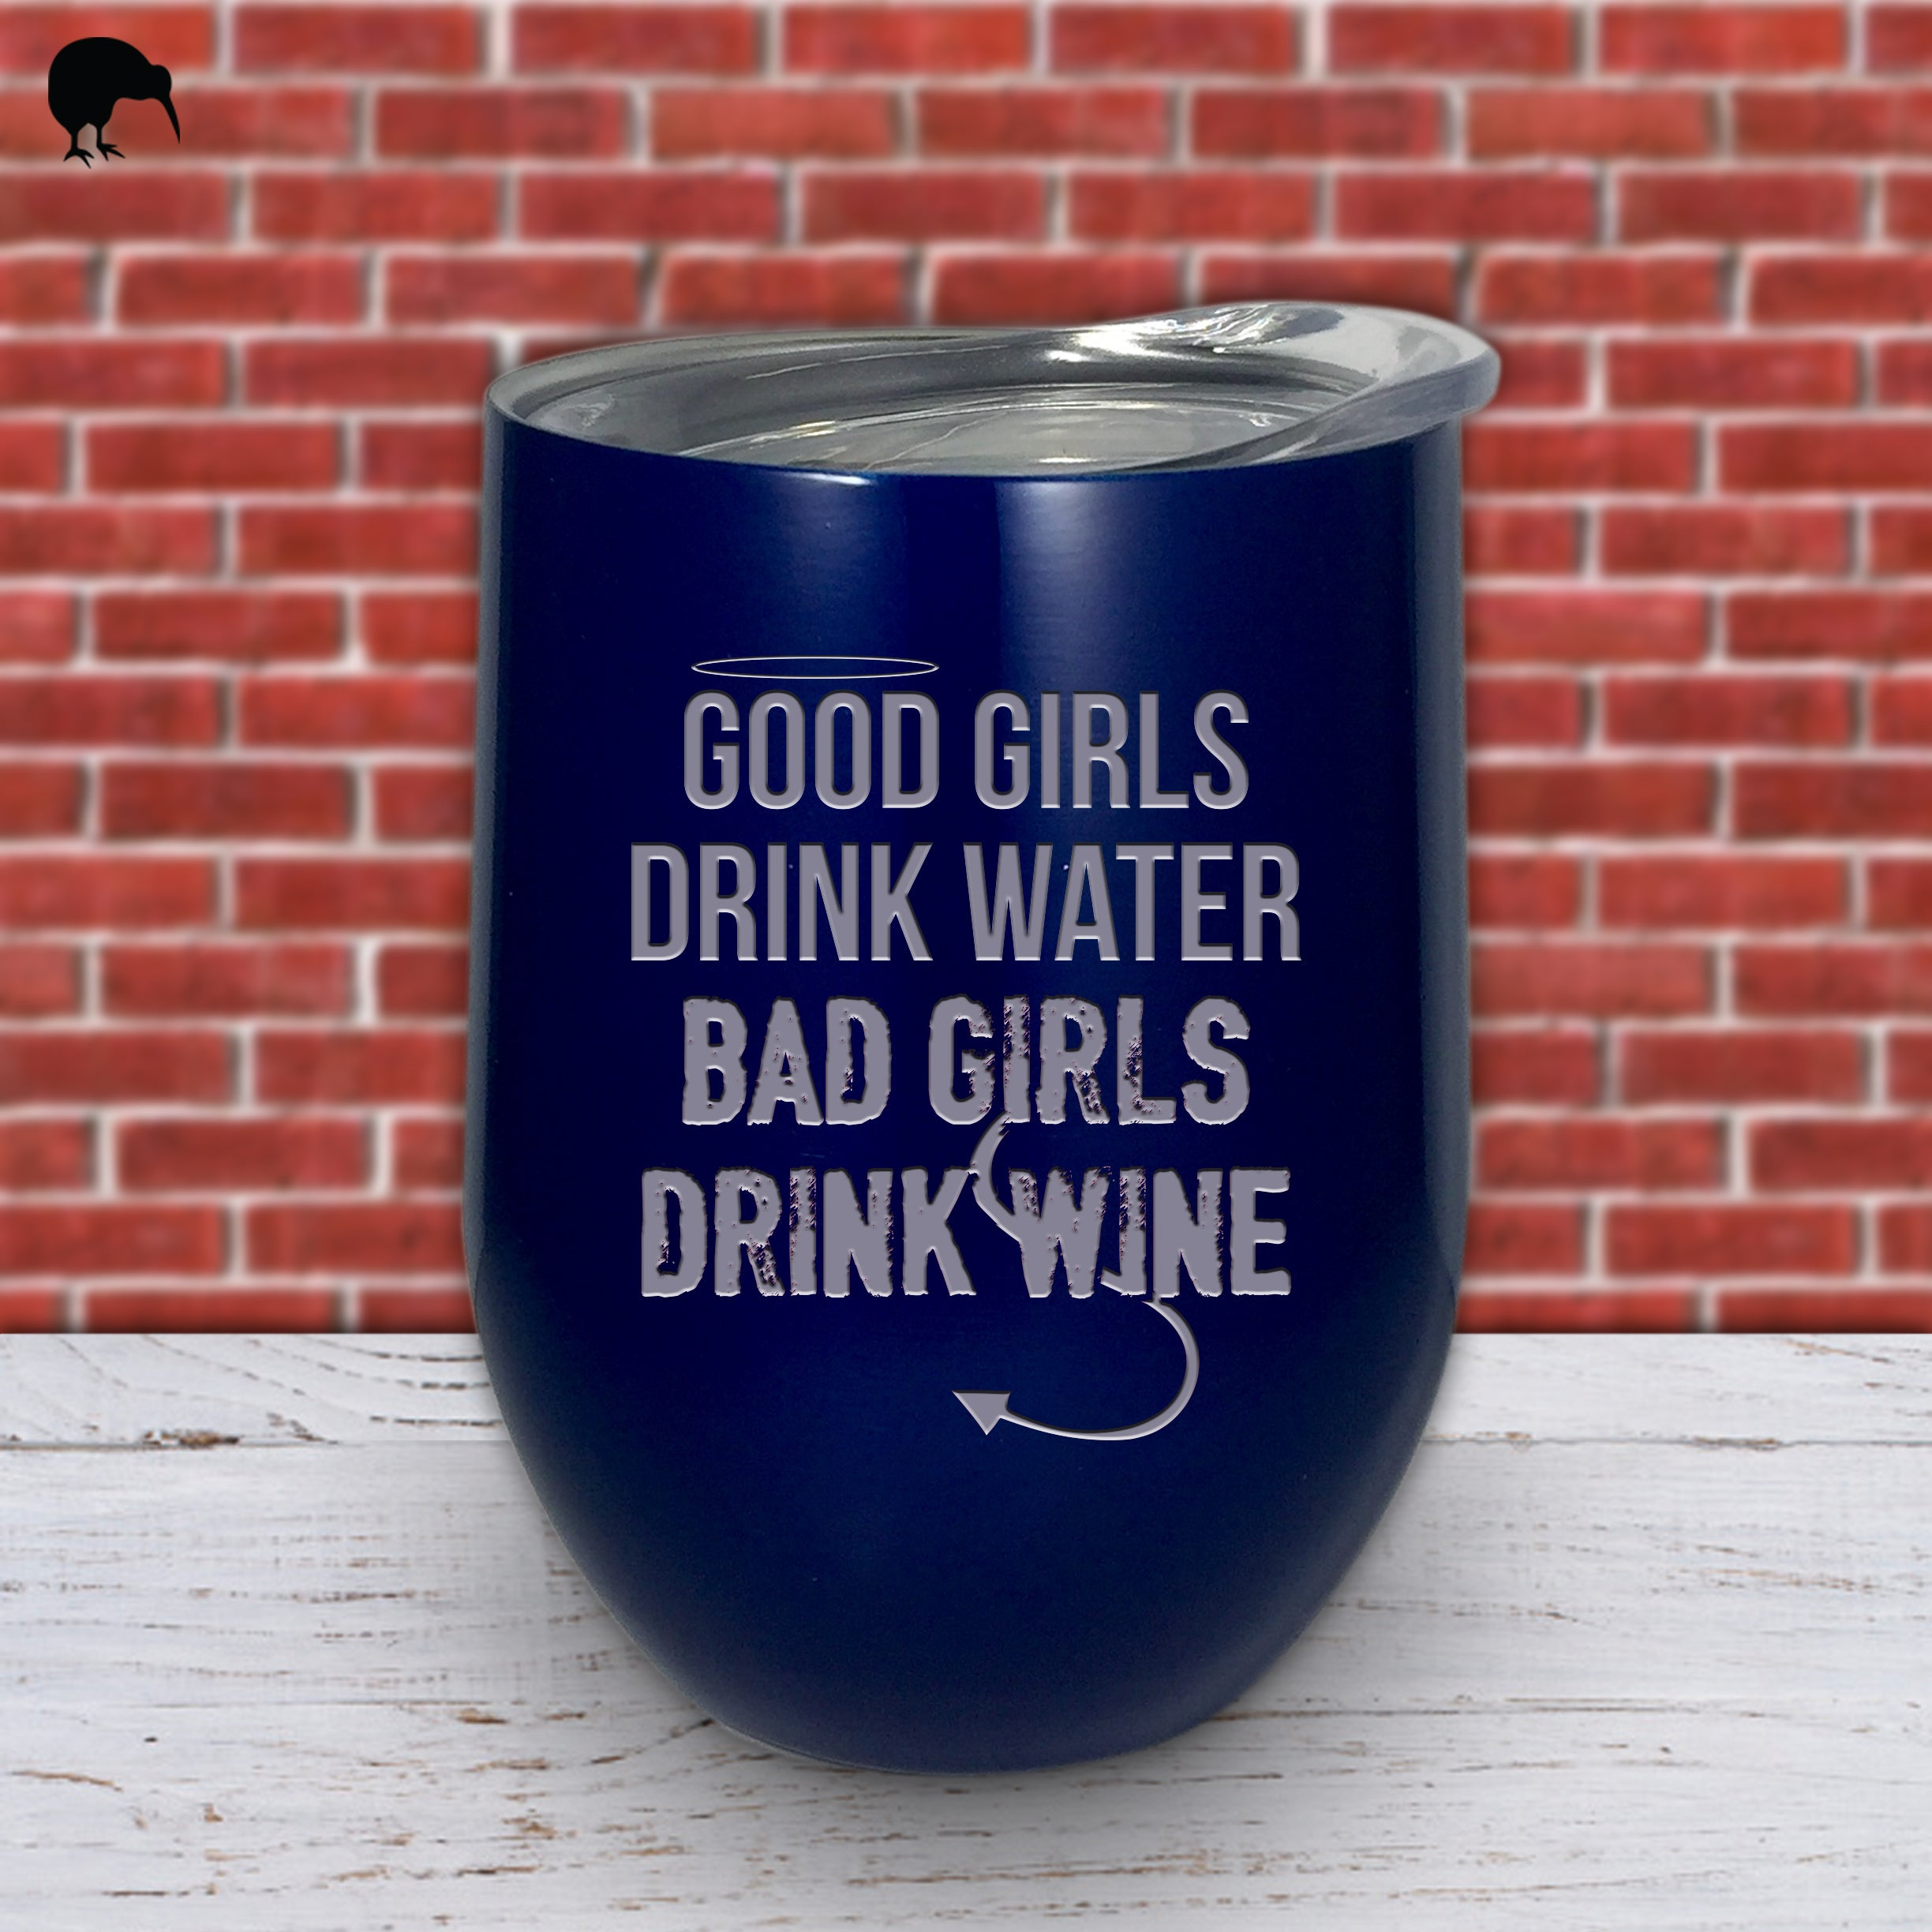 Bad Girls Drink Wine - Wine Cup